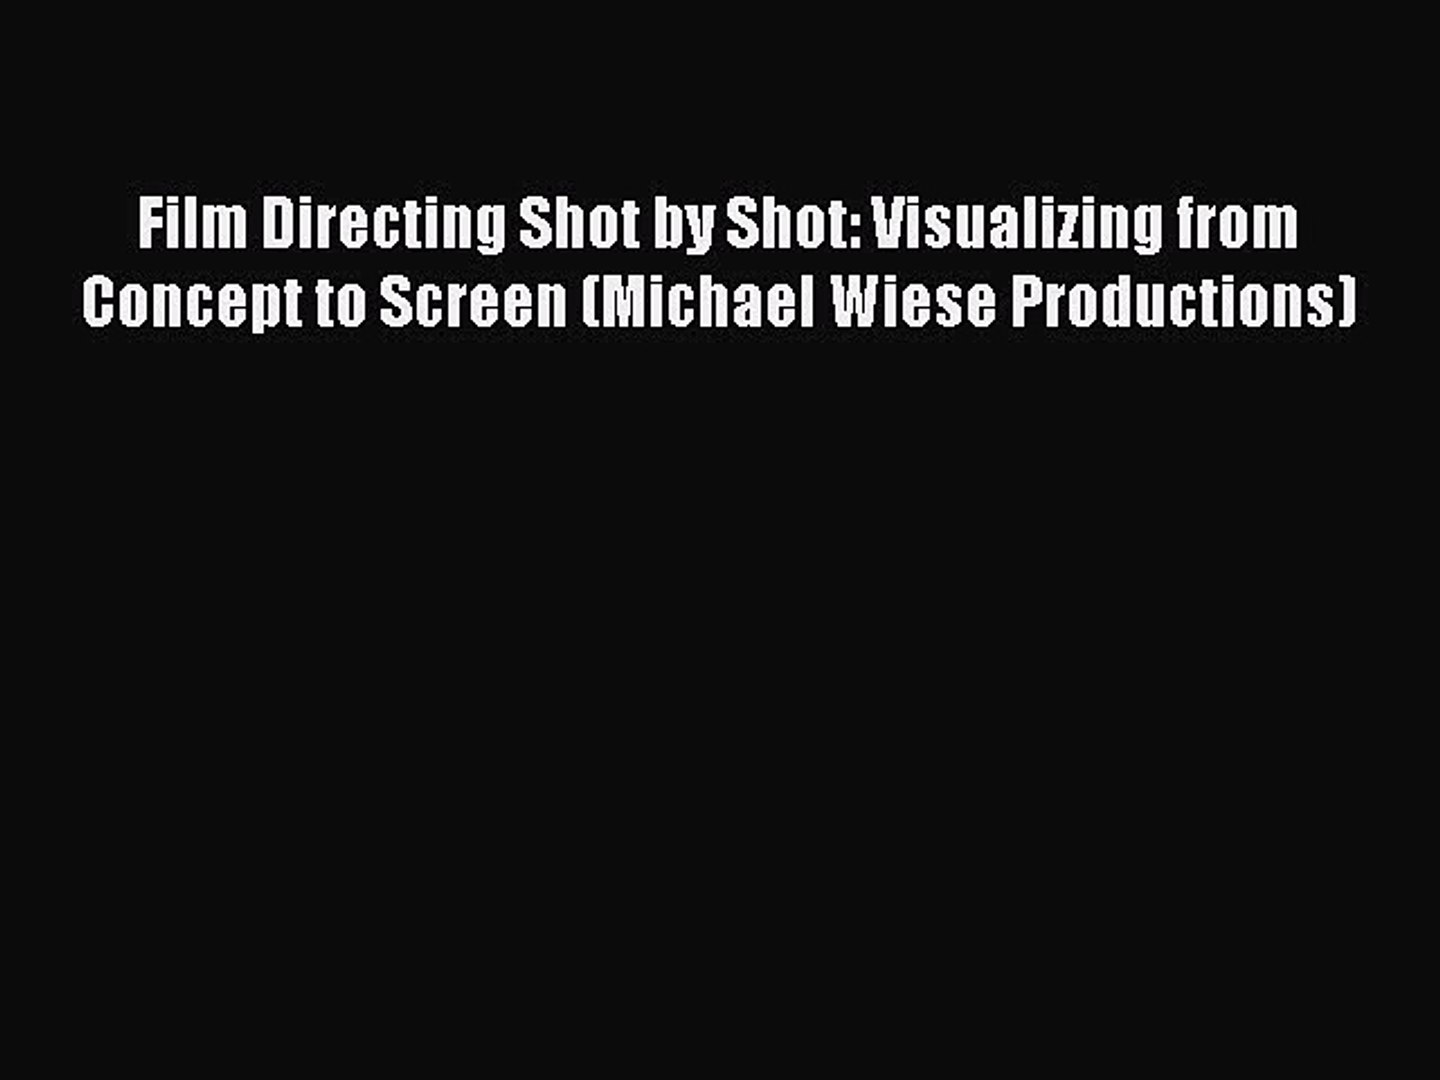 Download Film Directing Shot by Shot: Visualizing from Concept to Screen (Michael Wiese Productions)